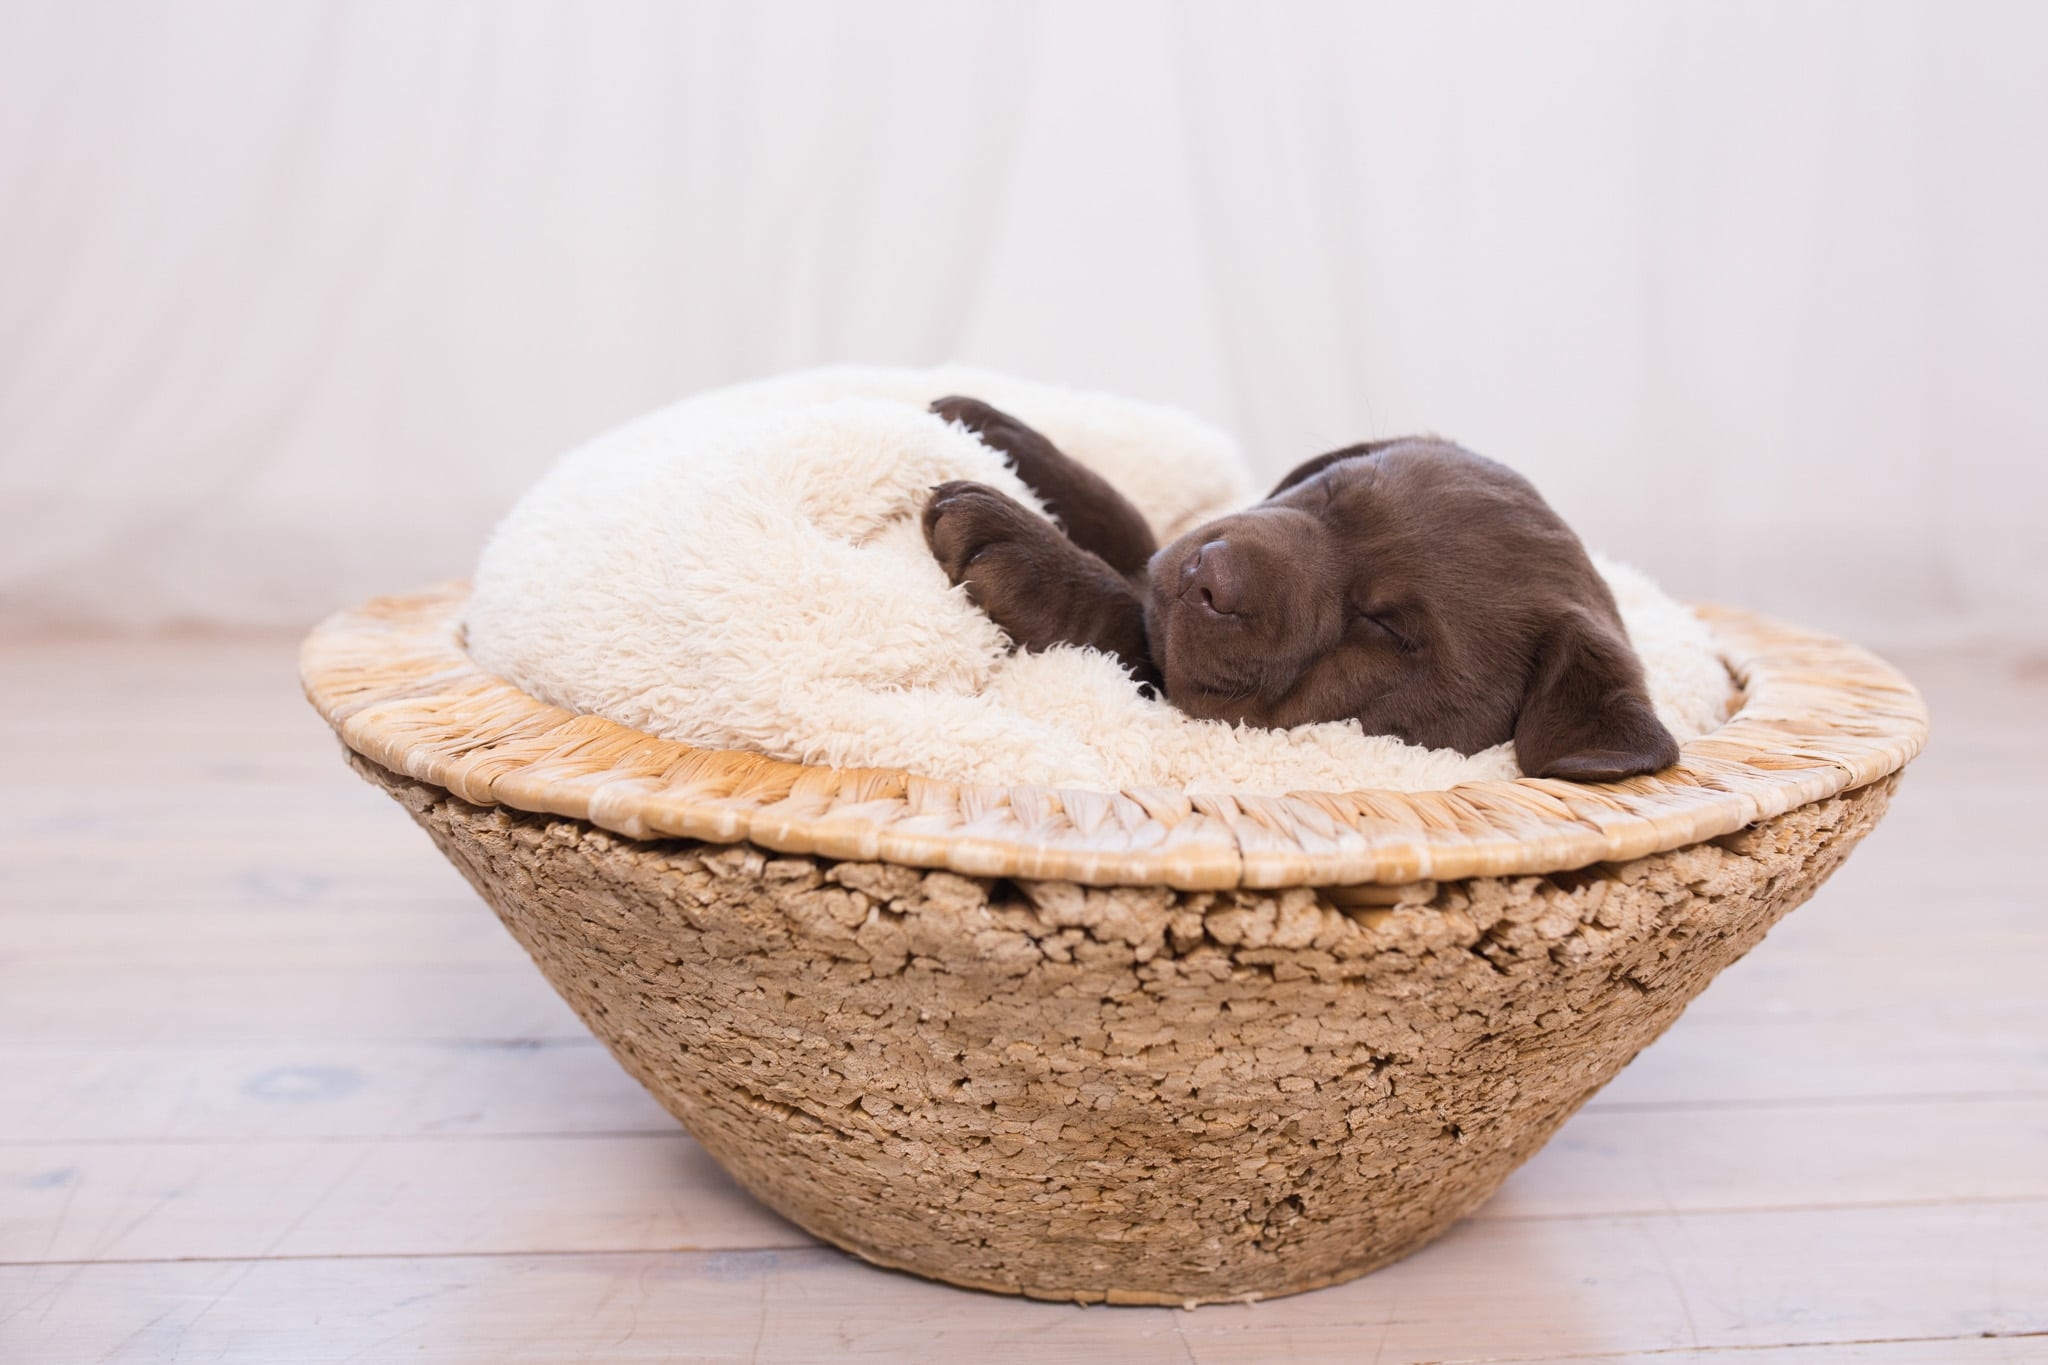 chocolate purebred labrador puppy sleeping in basket merelda labradors